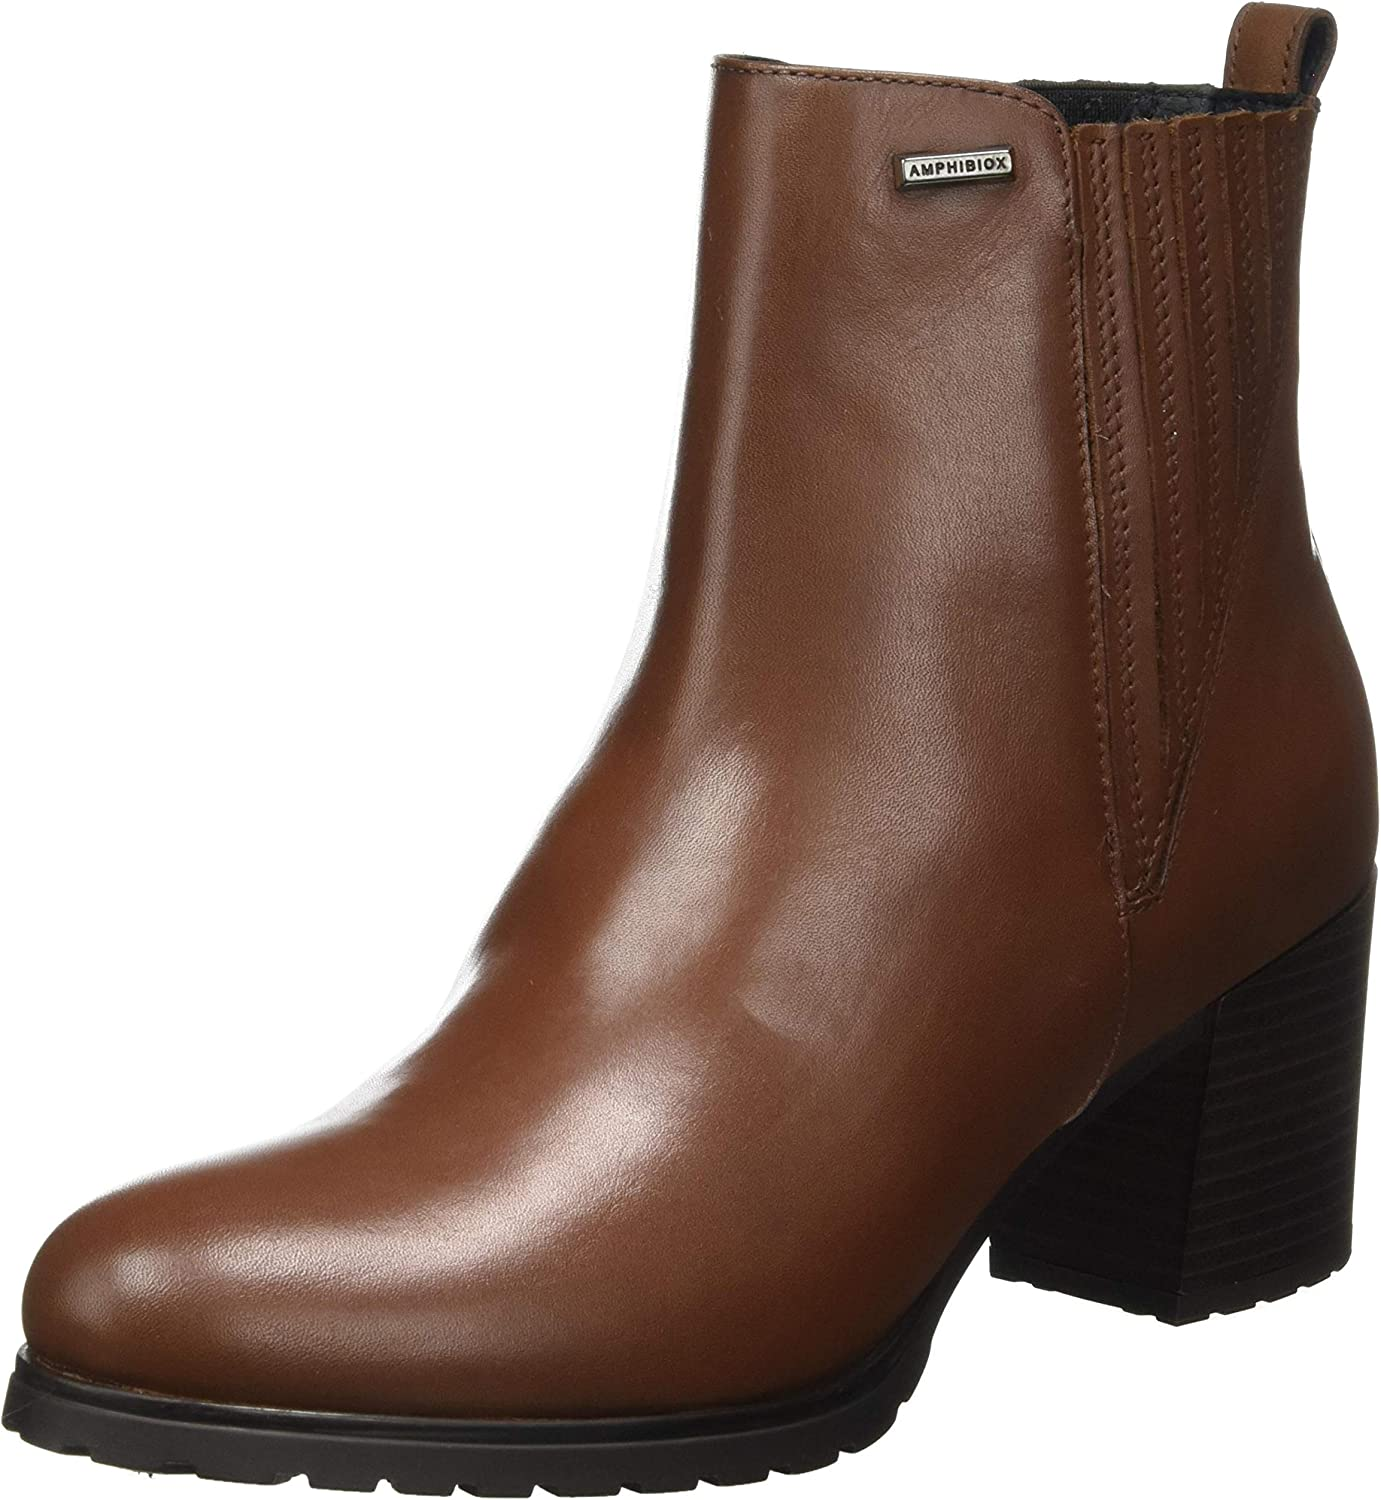 Monumento Gaseoso Manual  Geox Women's D New LISE NP ABX A Ankle Boot, Brown, 5 UK: Amazon.co.uk:  Shoes & Bags